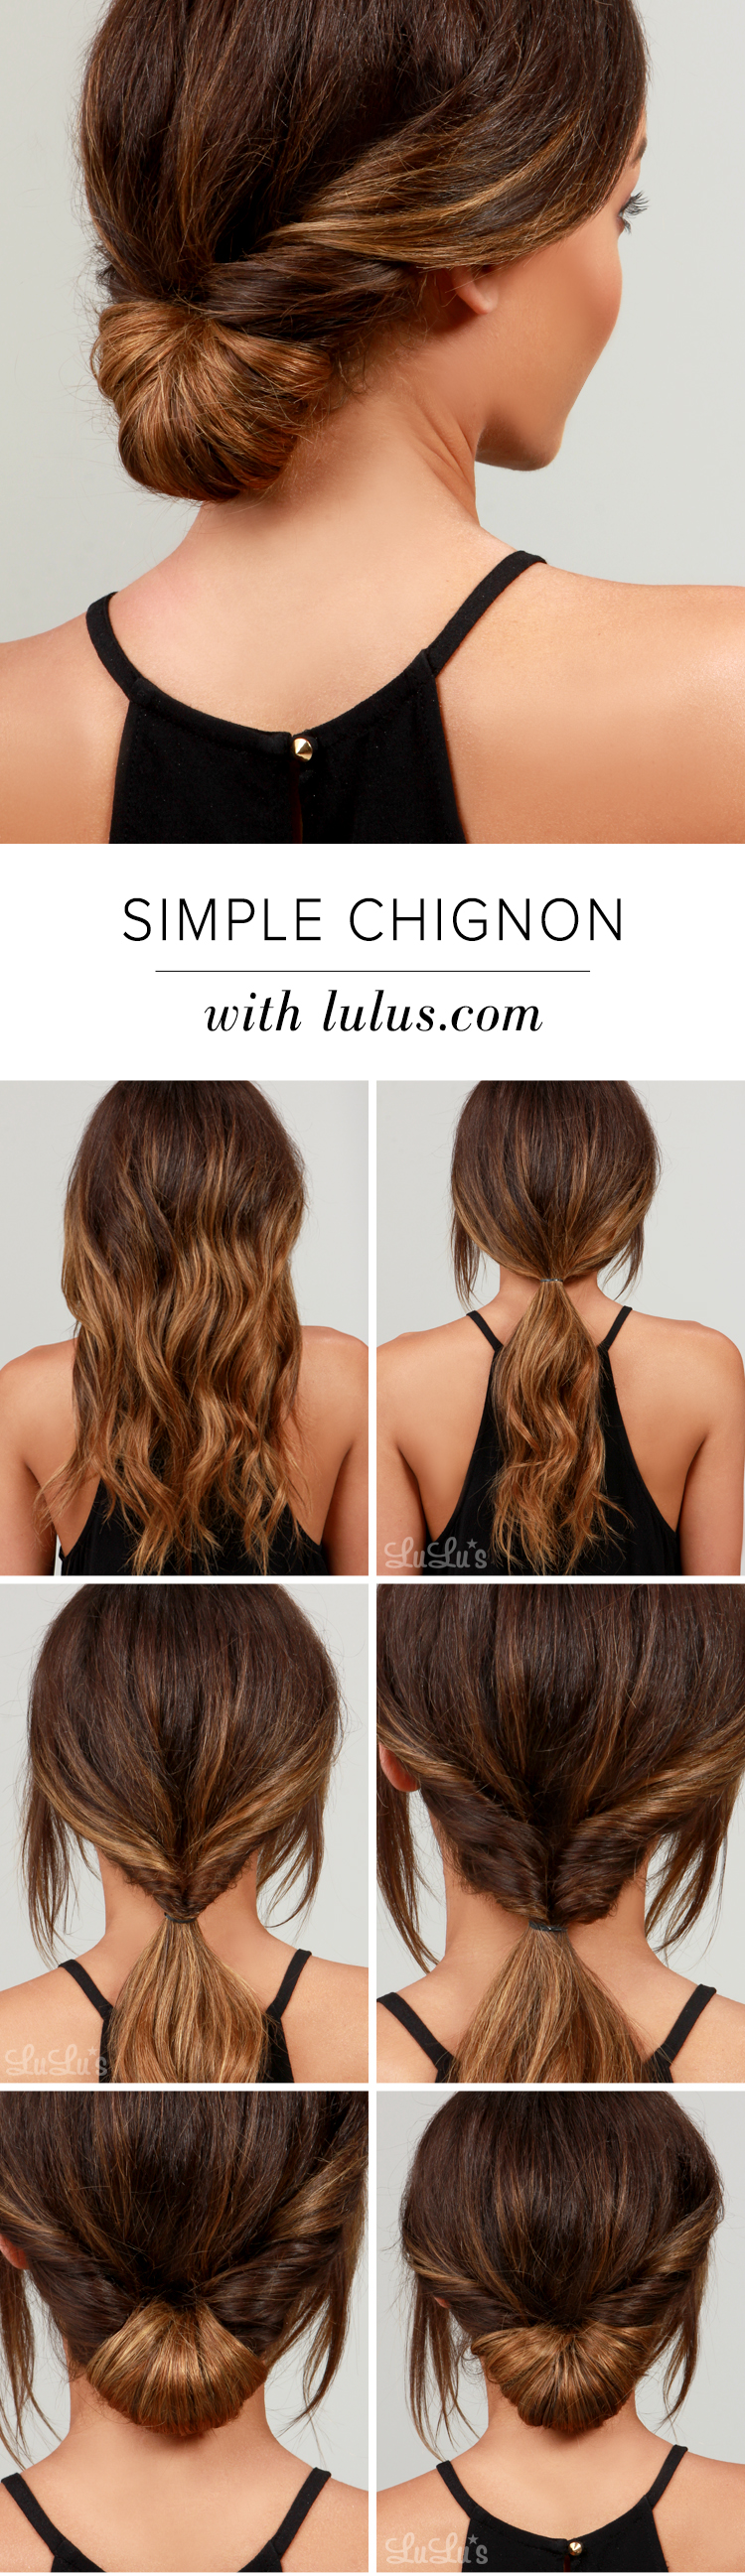 50 pretty hairstyles to experiment with at home diy simple cignon solutioingenieria Choice Image